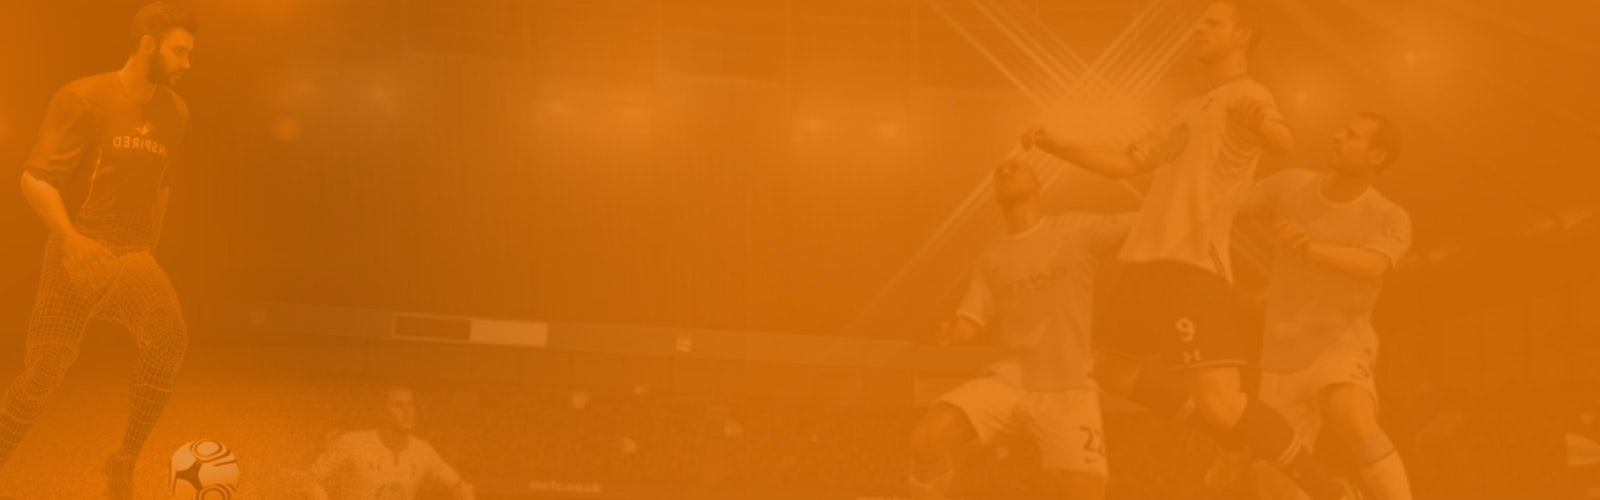 Virtual sports header image 2